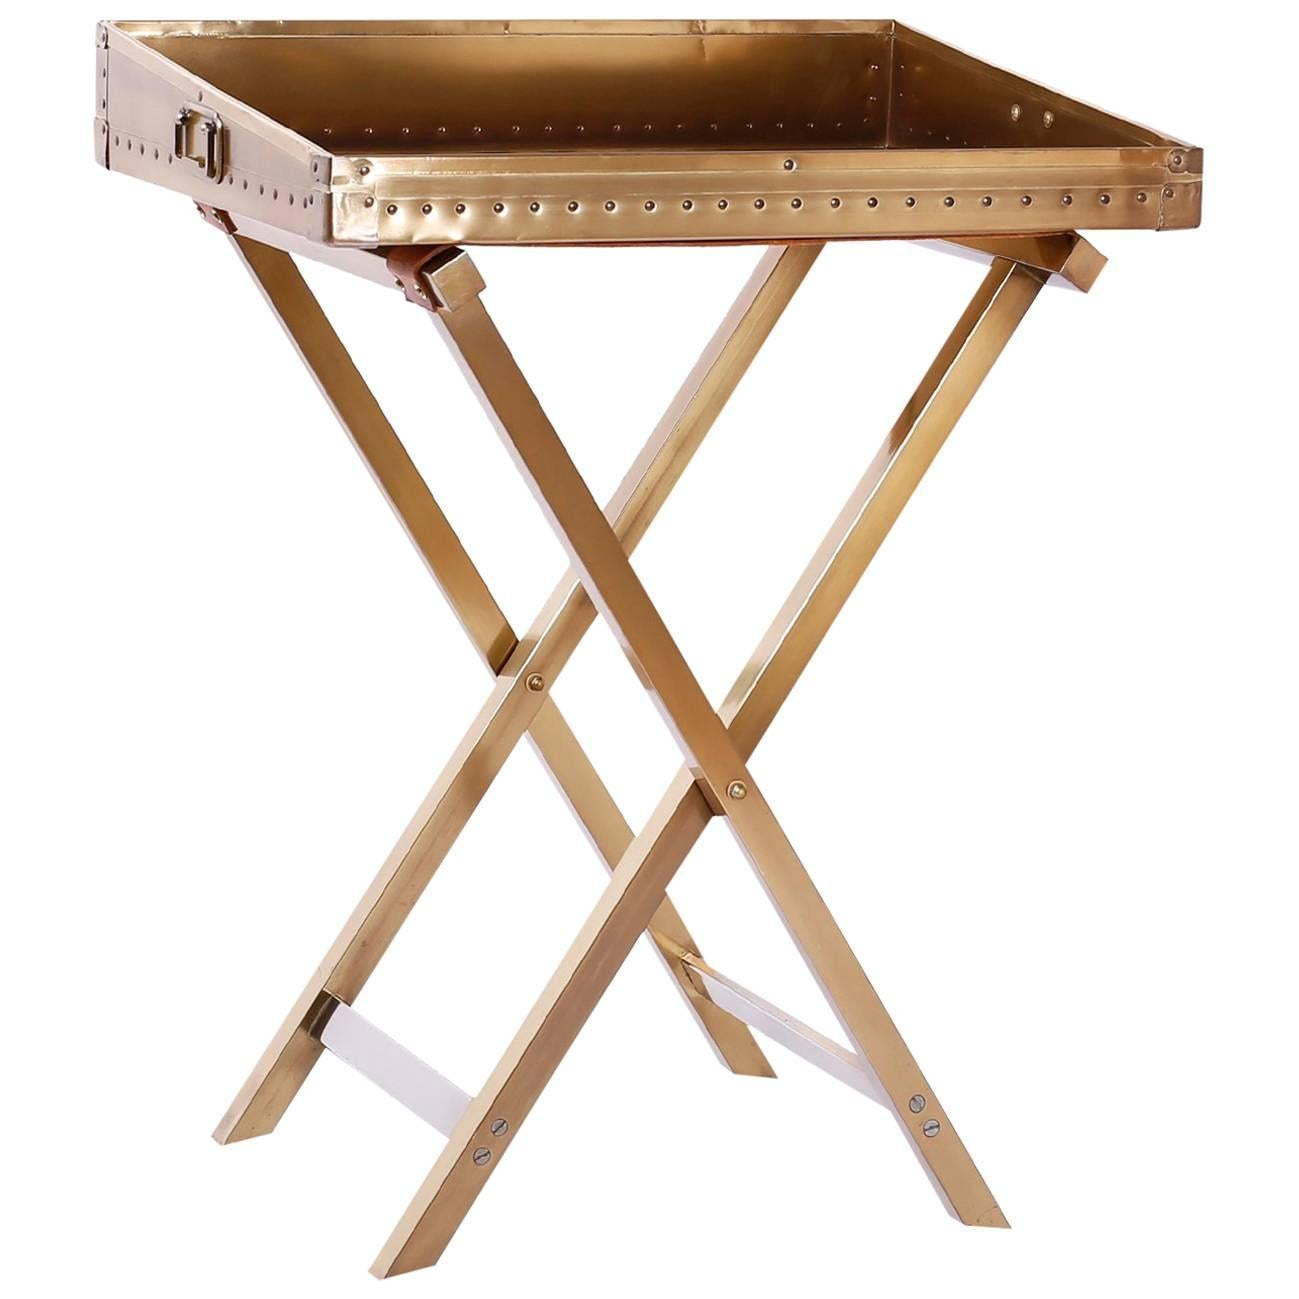 Campaign Style Foldable Bar or Tray